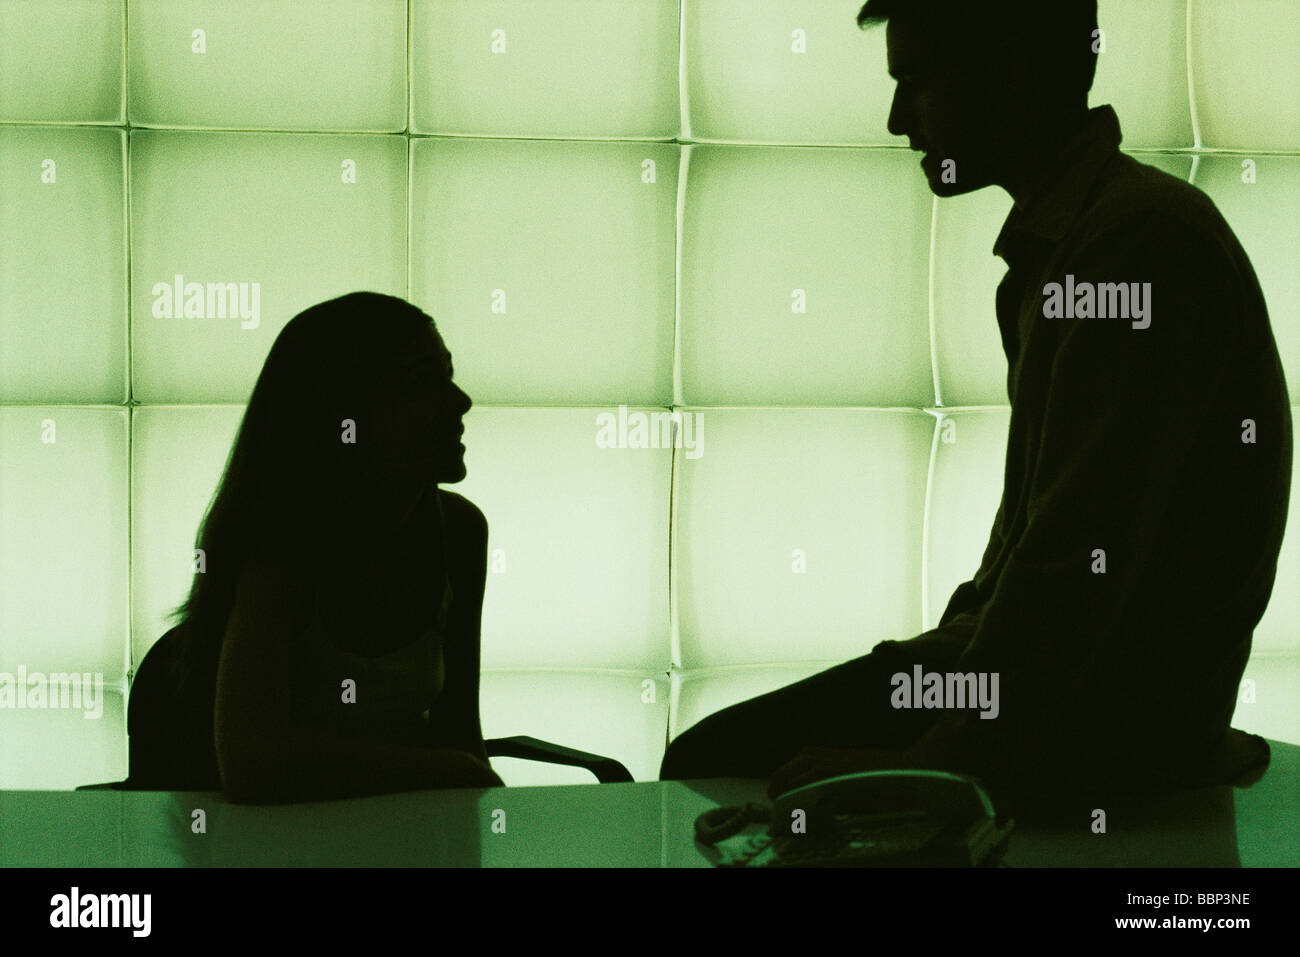 Colleagues chatting, man sitting on corner of desk, woman sitting at desk - Stock Image